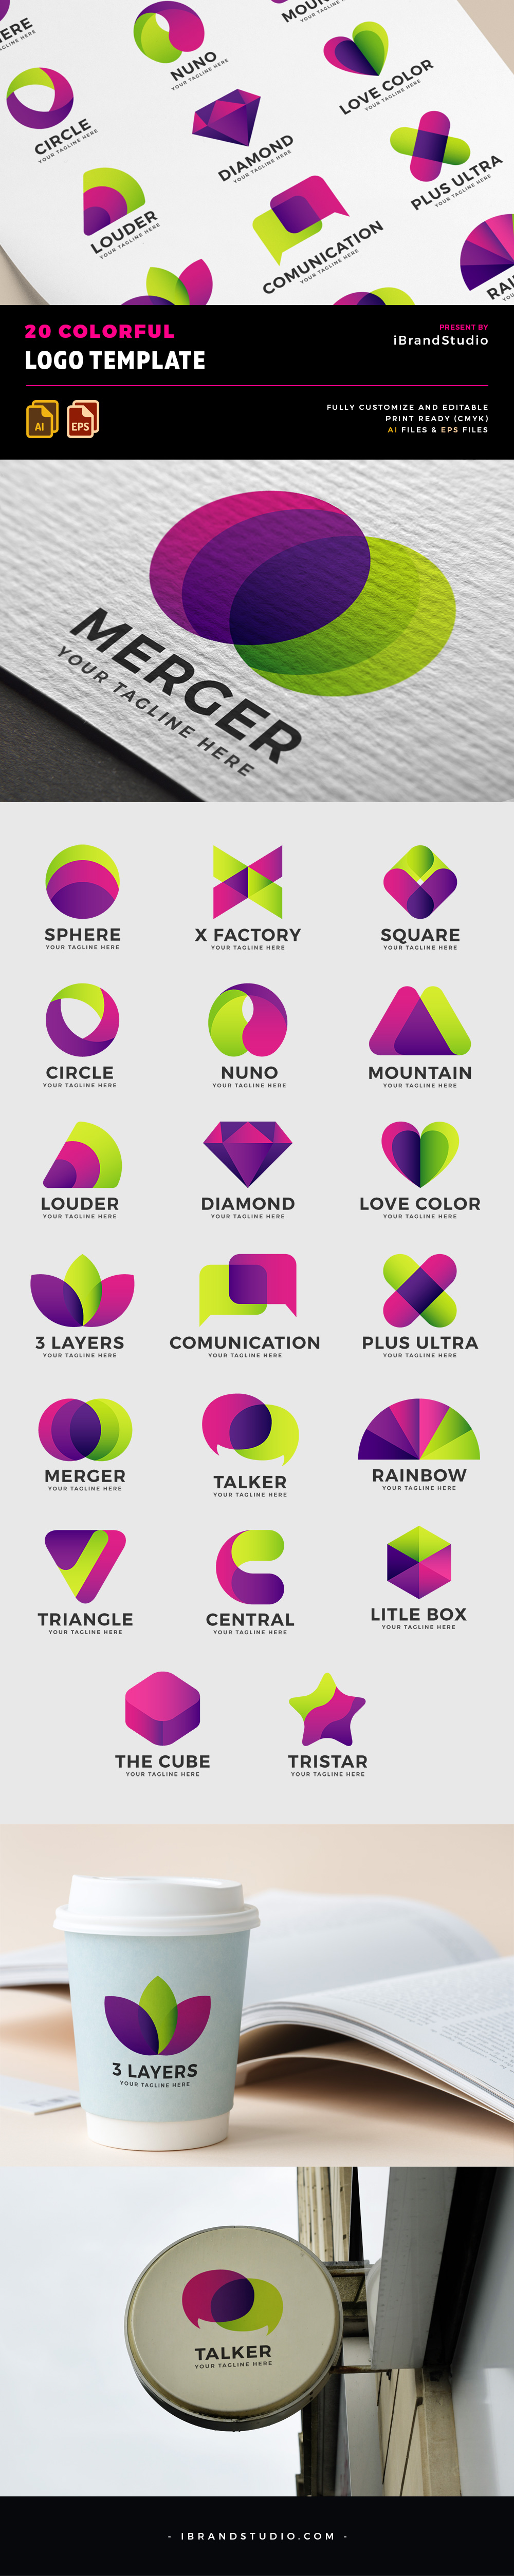 20 Free Colorful Logos